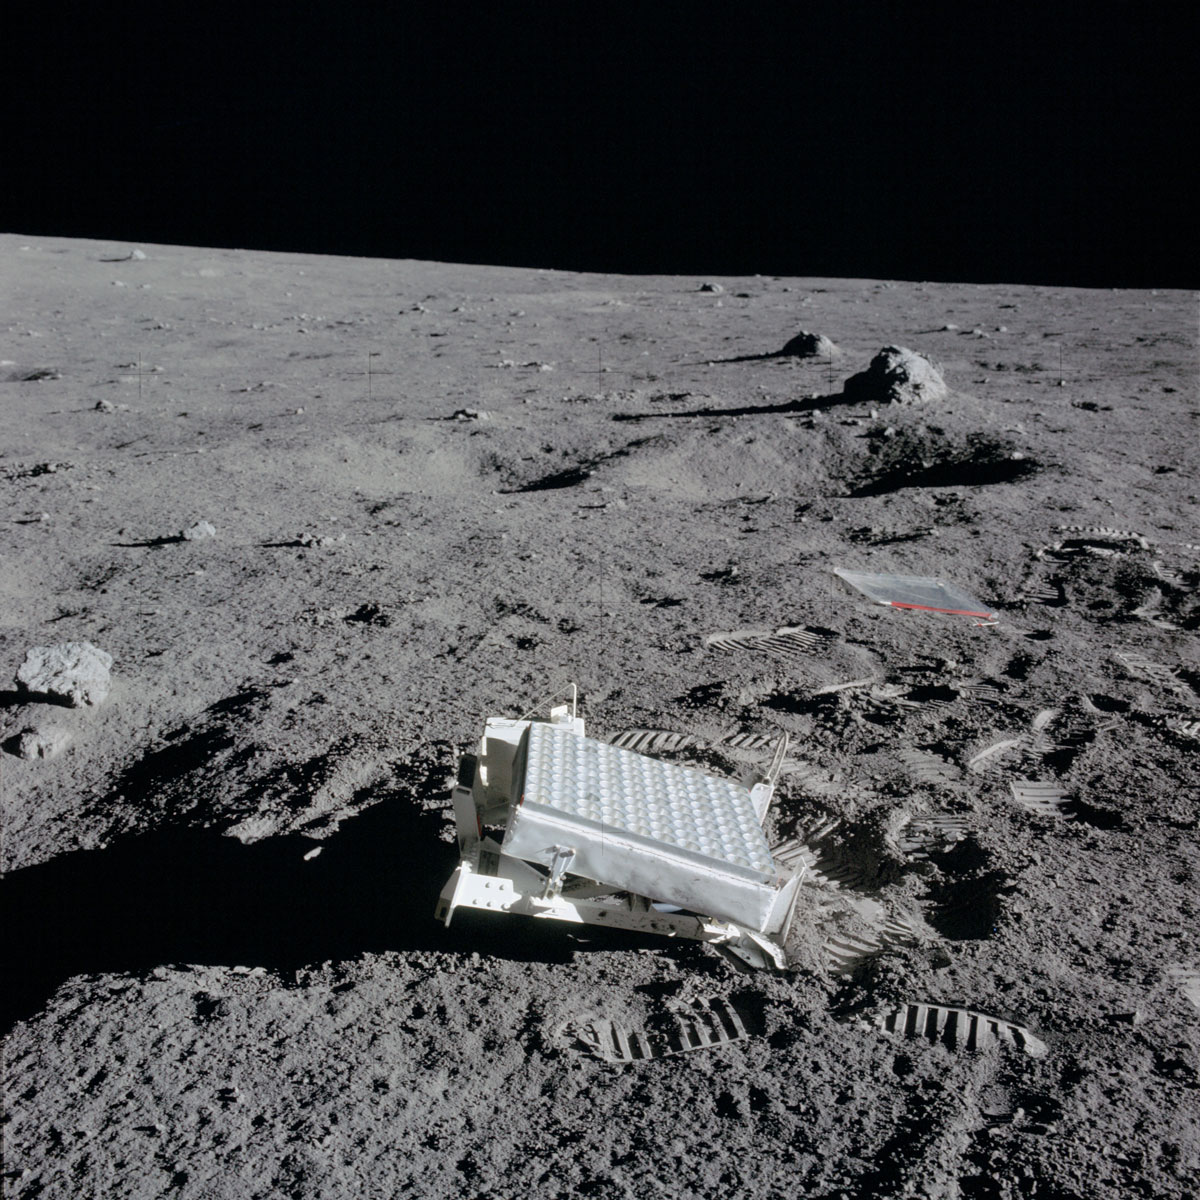 Laser Ranging Retro-Reflector on the Moon